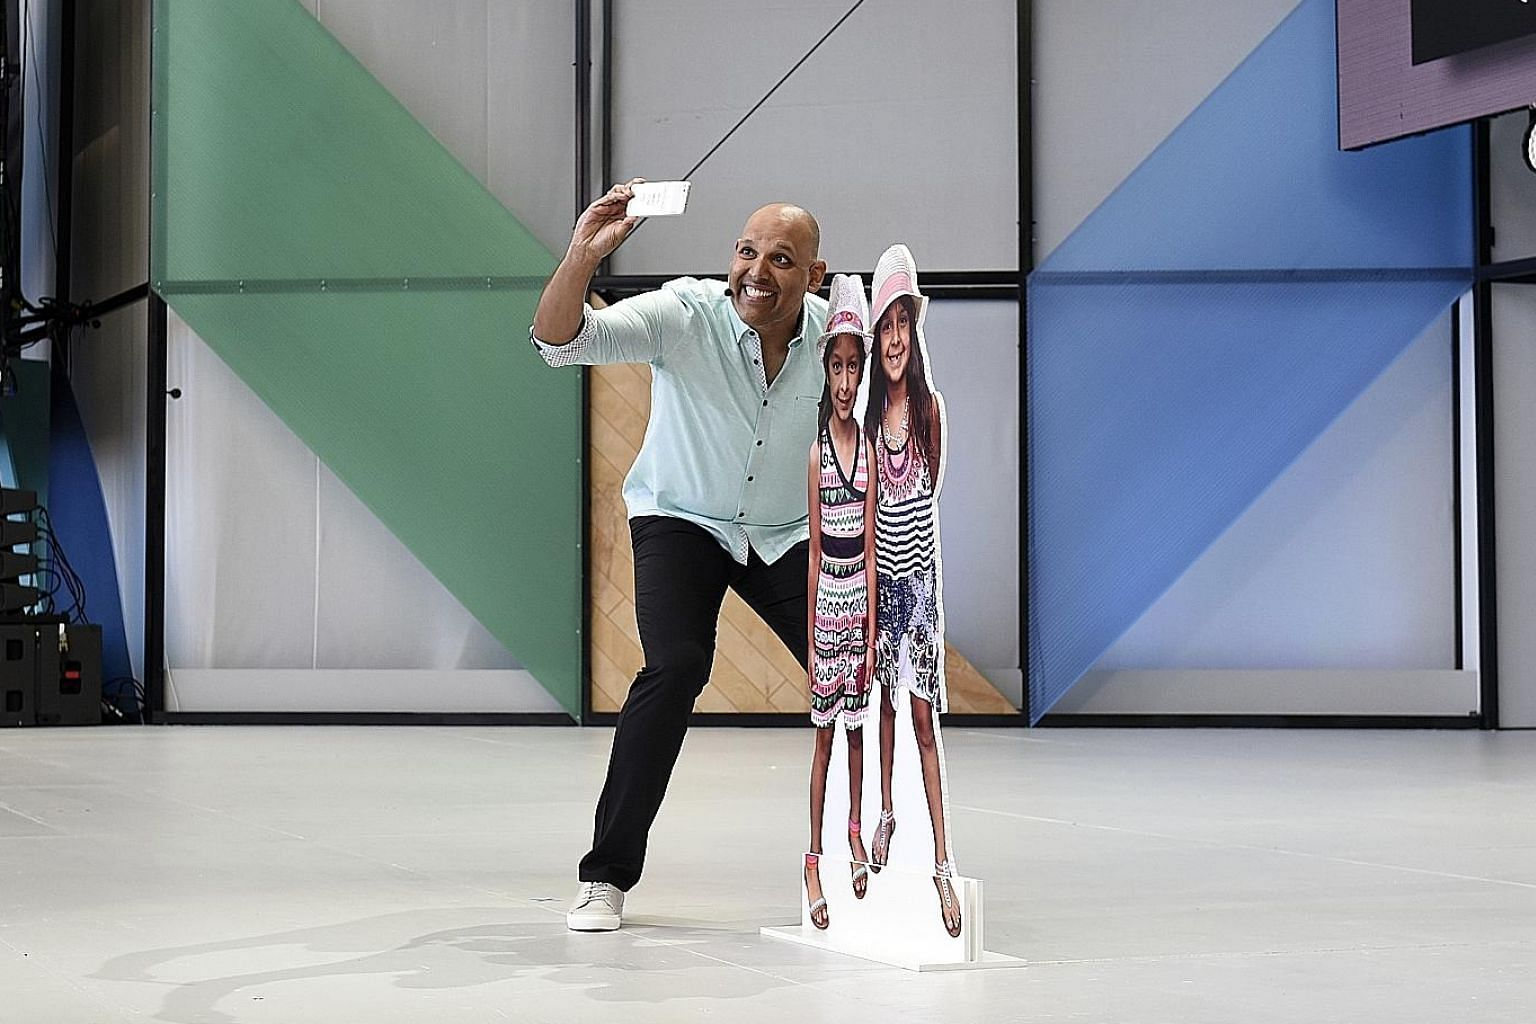 Google Photos vice-president Anil Sabharwal demonstrating a product using a smartphone and props during the Google I/O Annual Developers Conference in California last Wednesday. Google's artificial intelligence software will make its presence felt mo